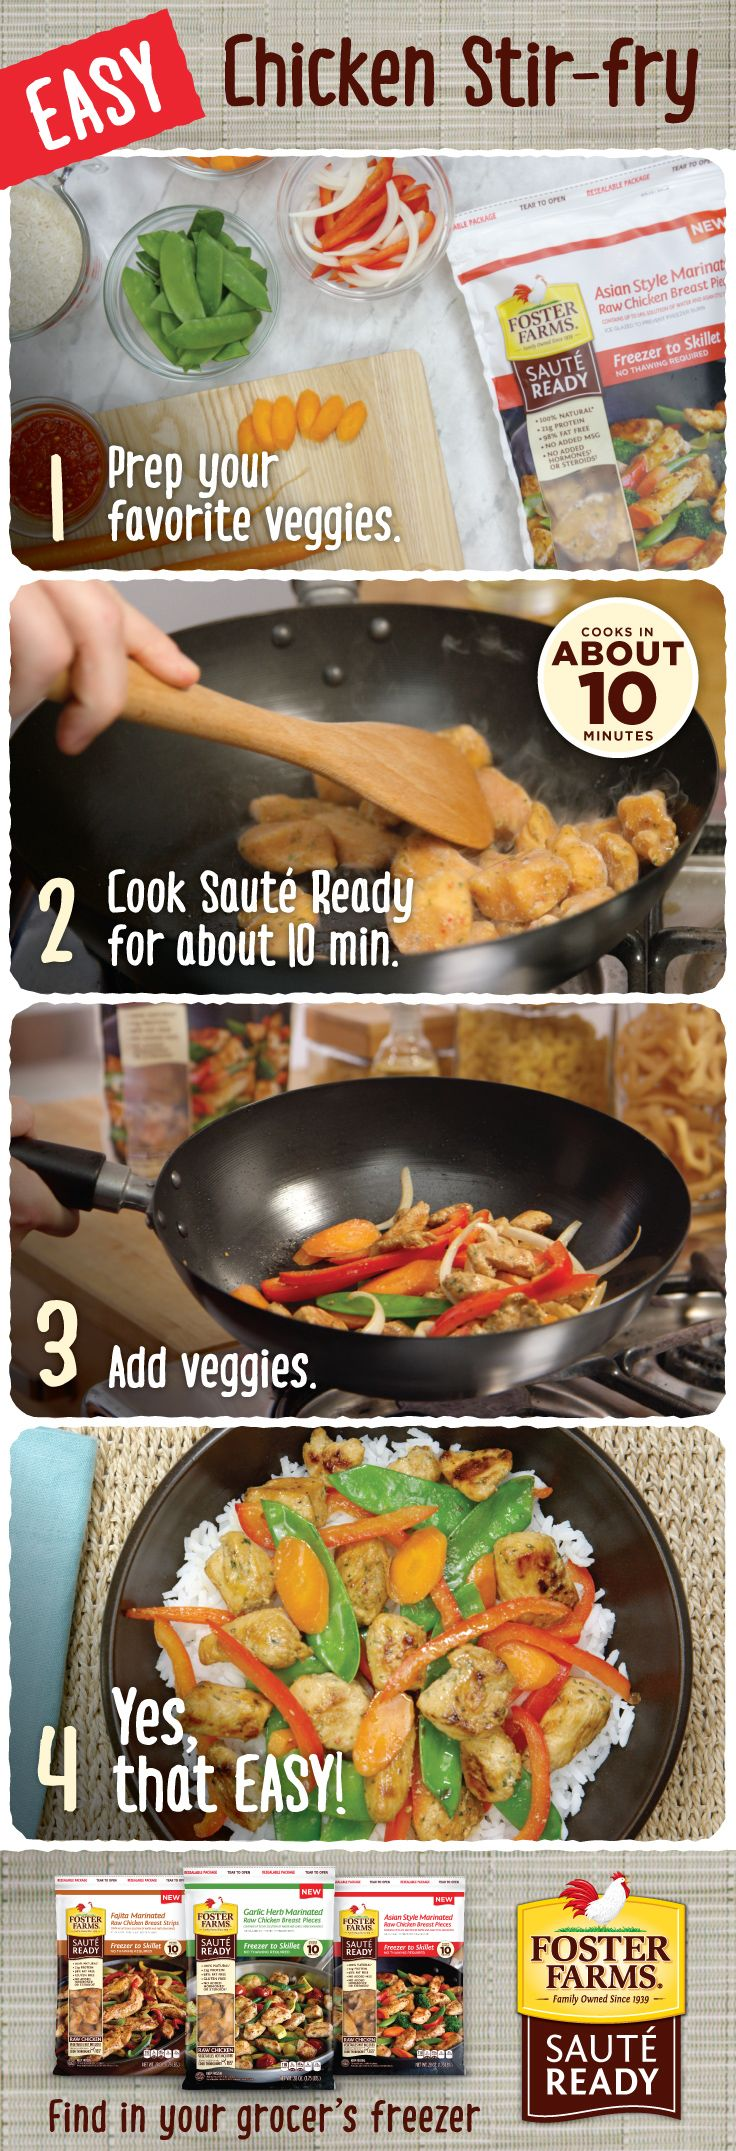 Looking for a quick home-cooked meal to impress your date? Sauté Ready has you covered! Click the link http://www.fosterfarms.com/sauteready/ for a delicious Easy Chicken Stir Fry recipe that you can whip up in minutes using Sauté Ready Asian-Style Marinated Chicken Breasts. Find it in your grocer's freezer today!